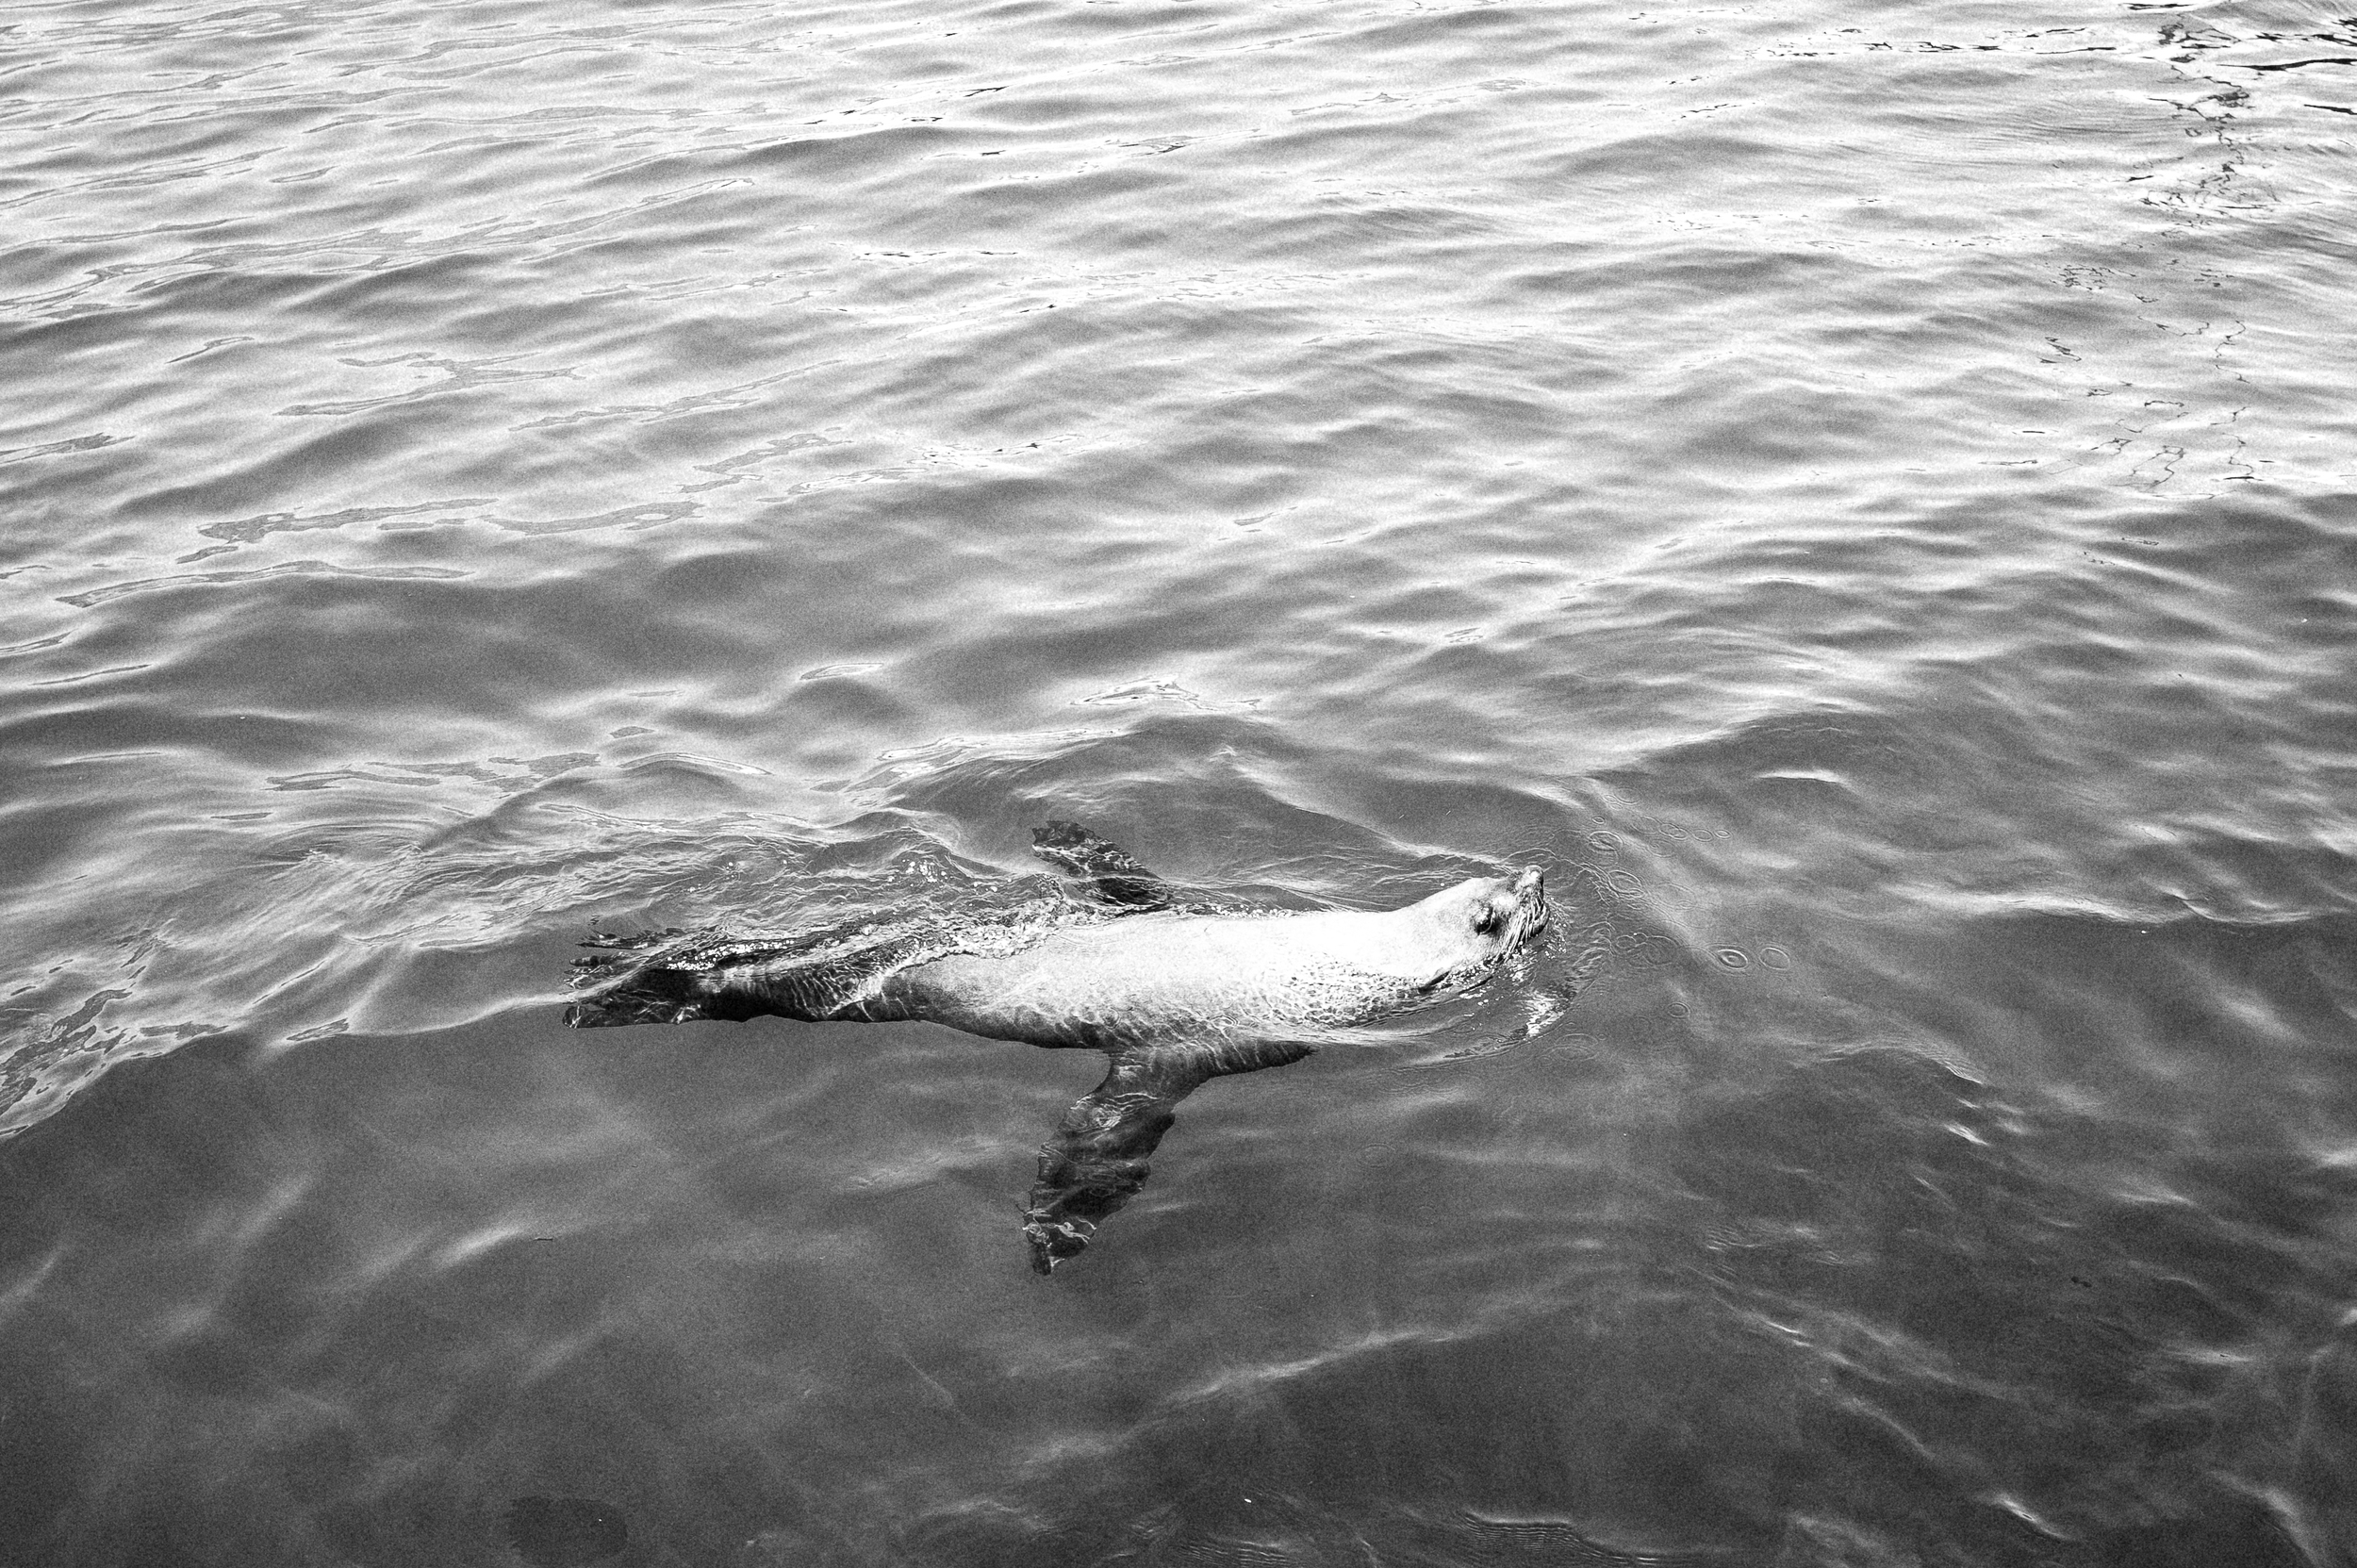 Seal, South Africa